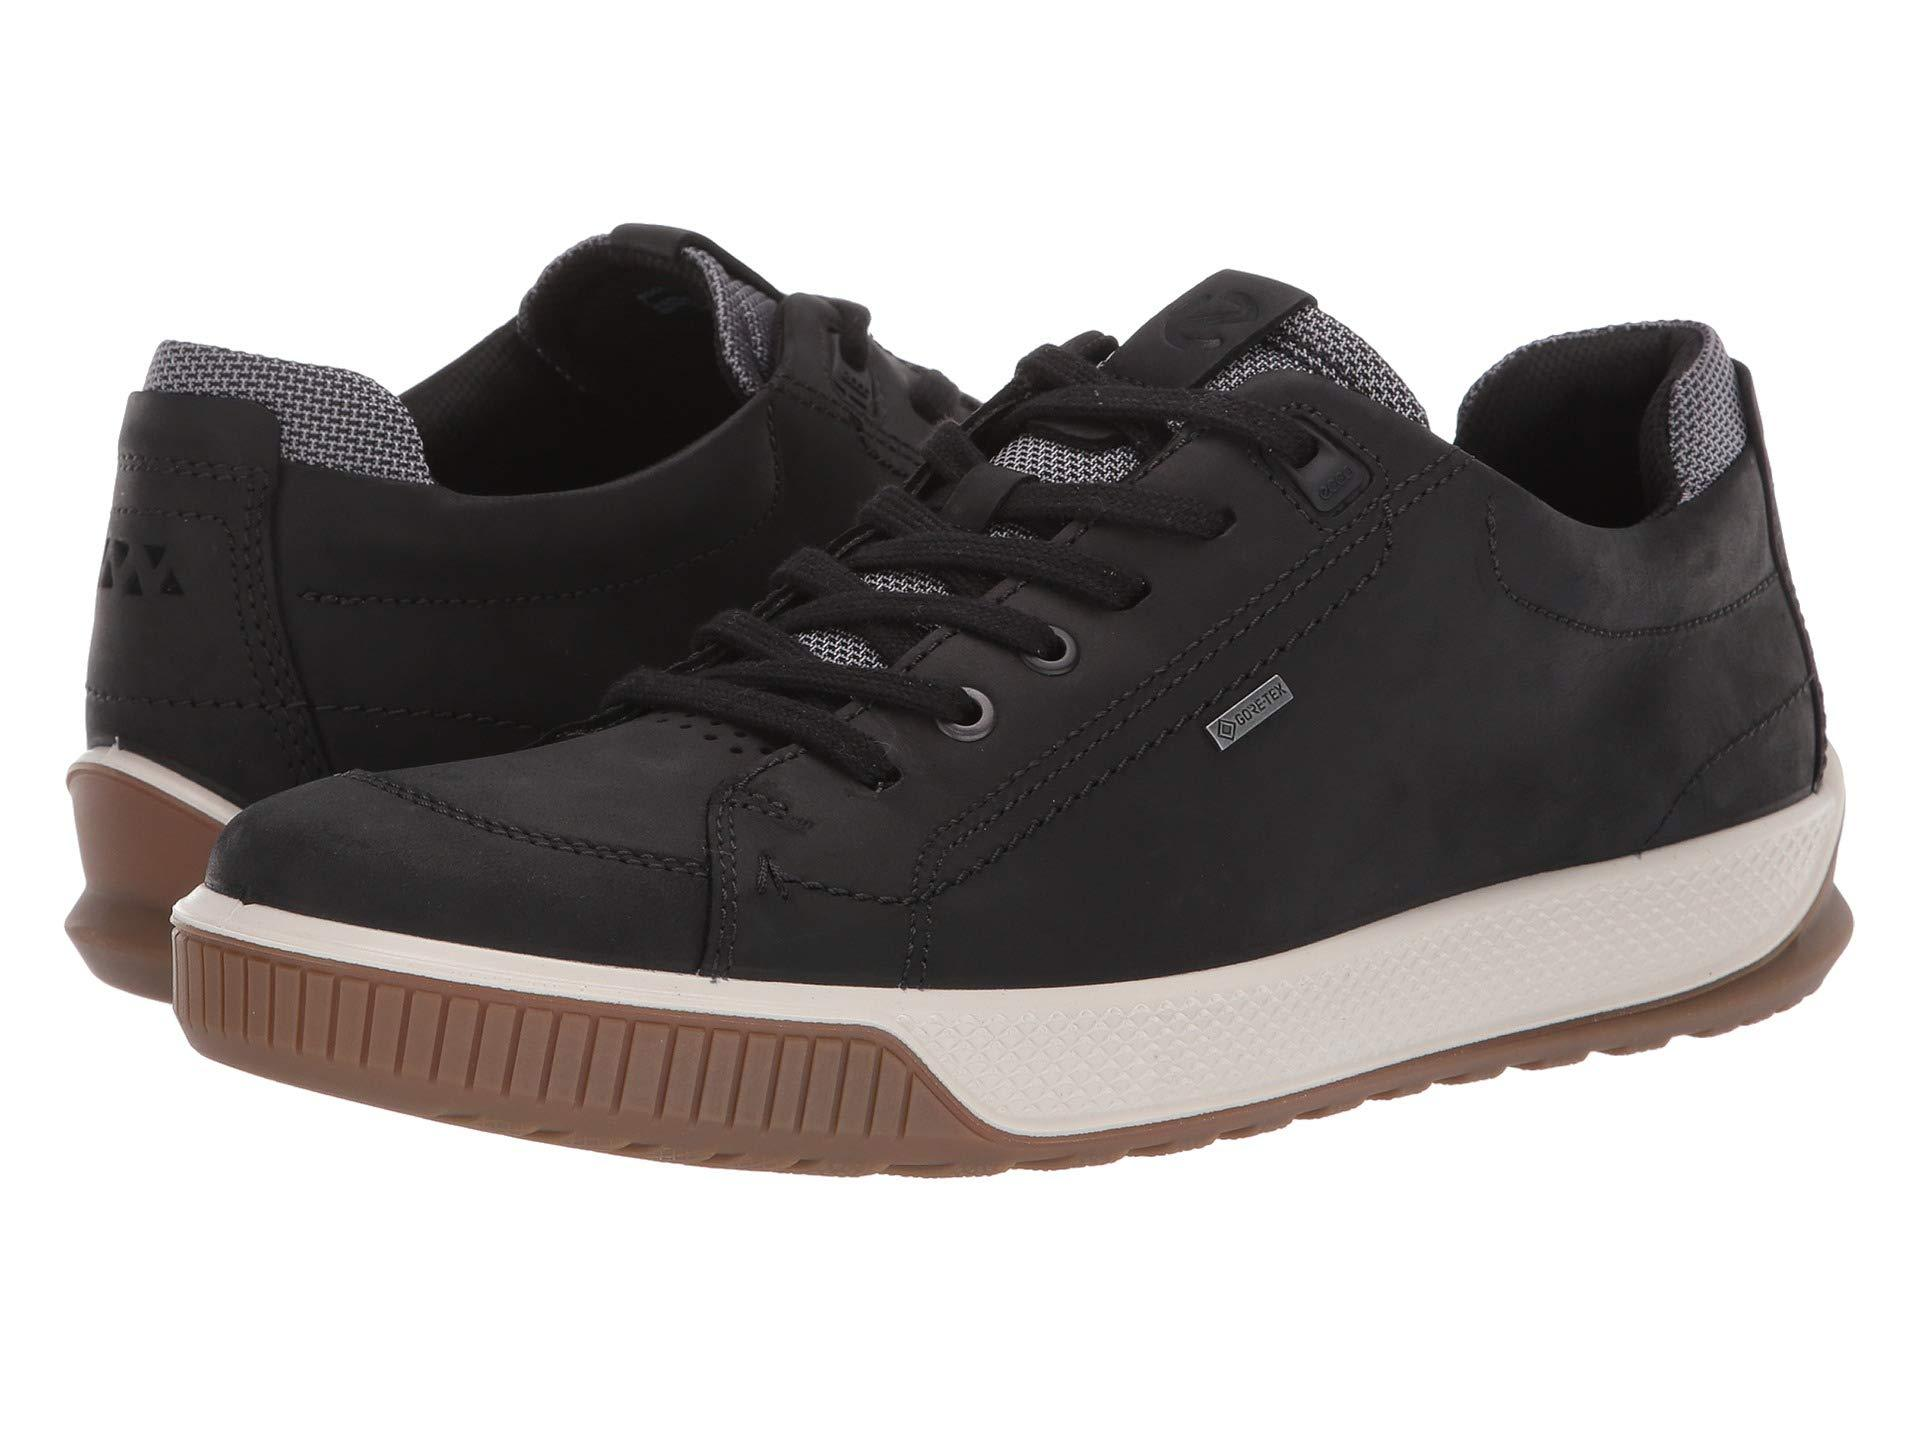 Ecco Leather Byway Tred Gore-tex in